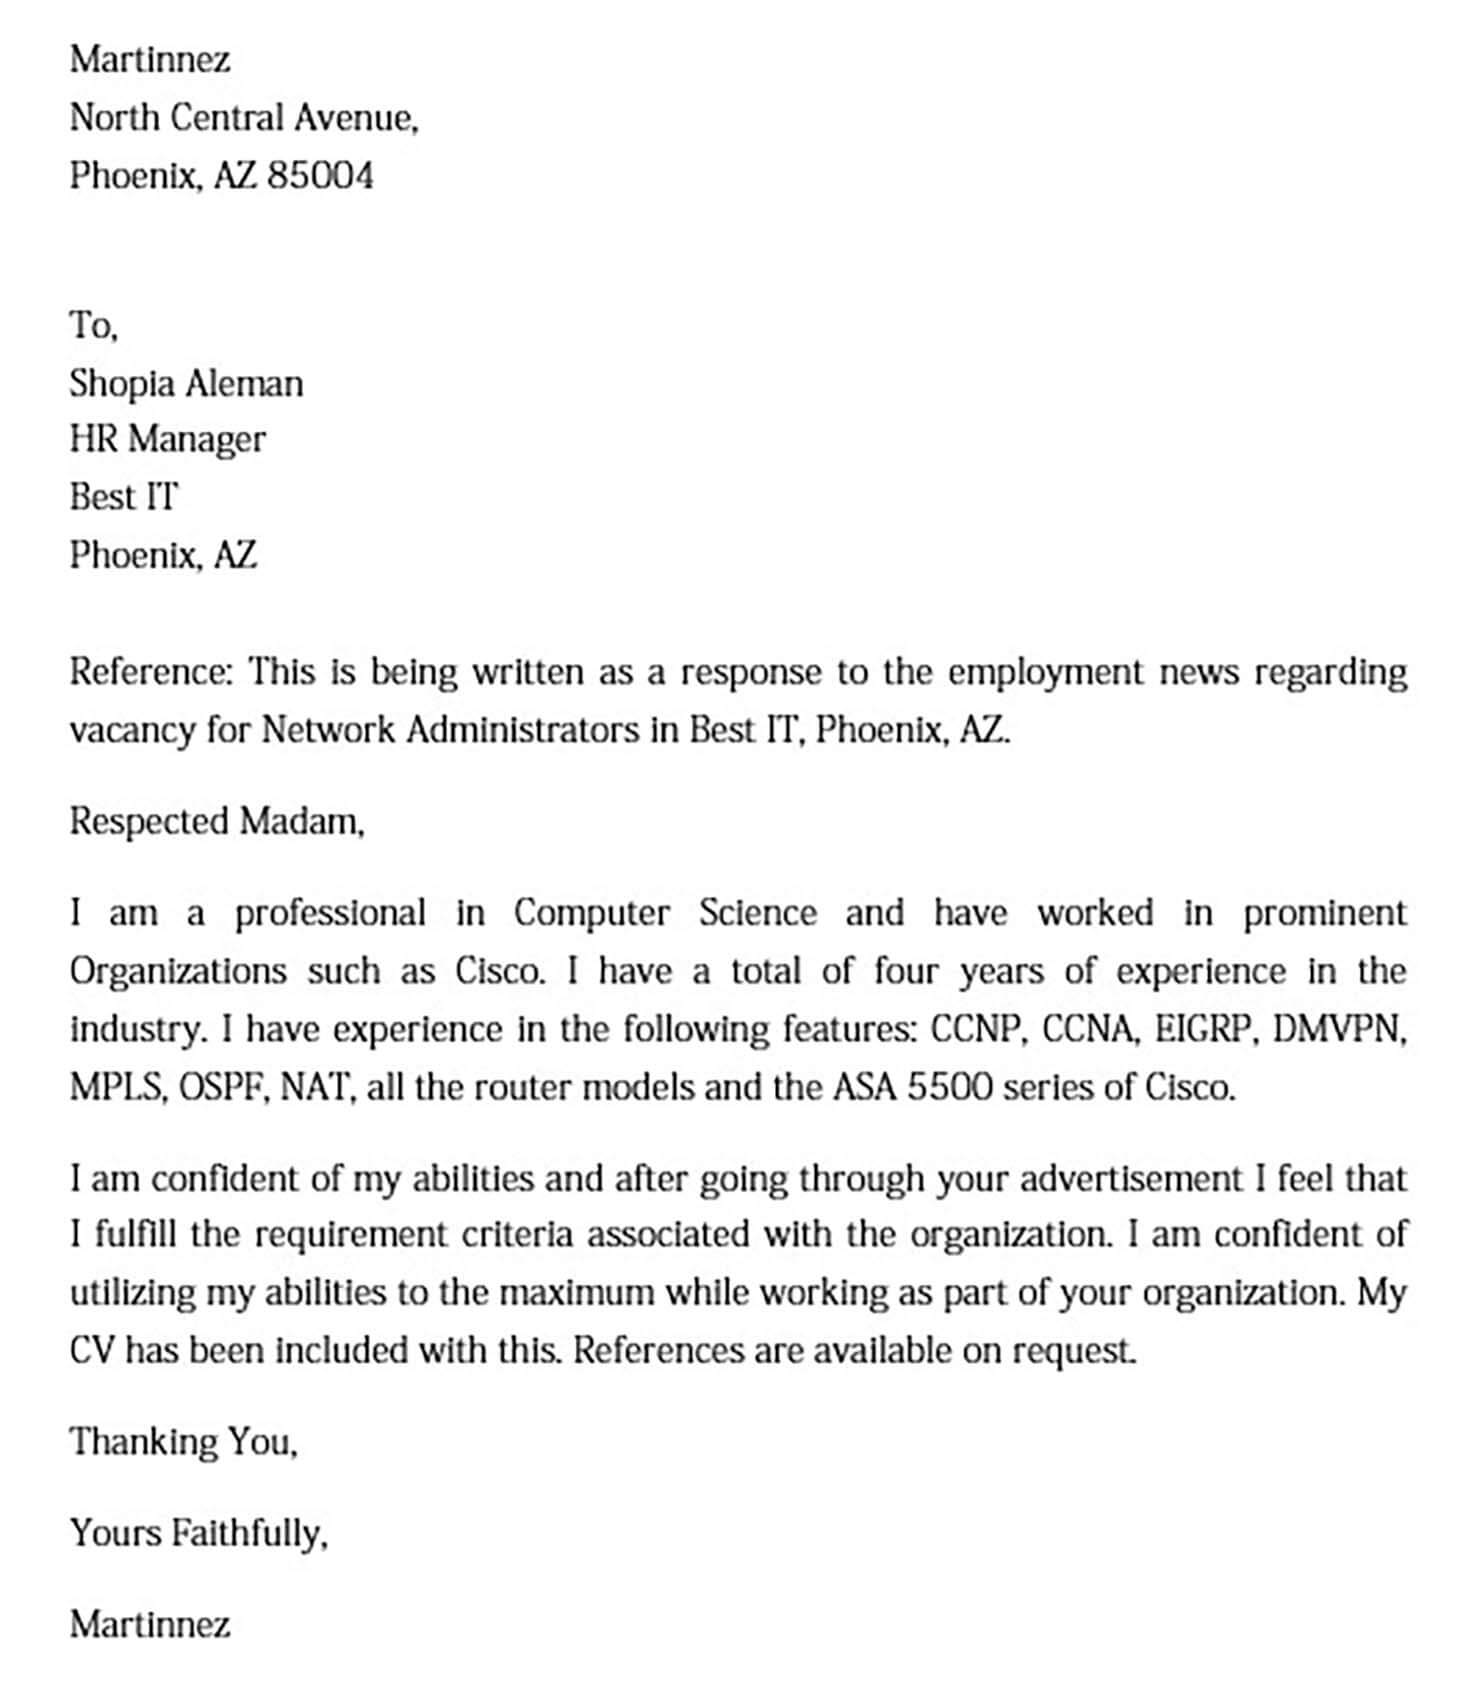 Letter of Intent for Employment templates